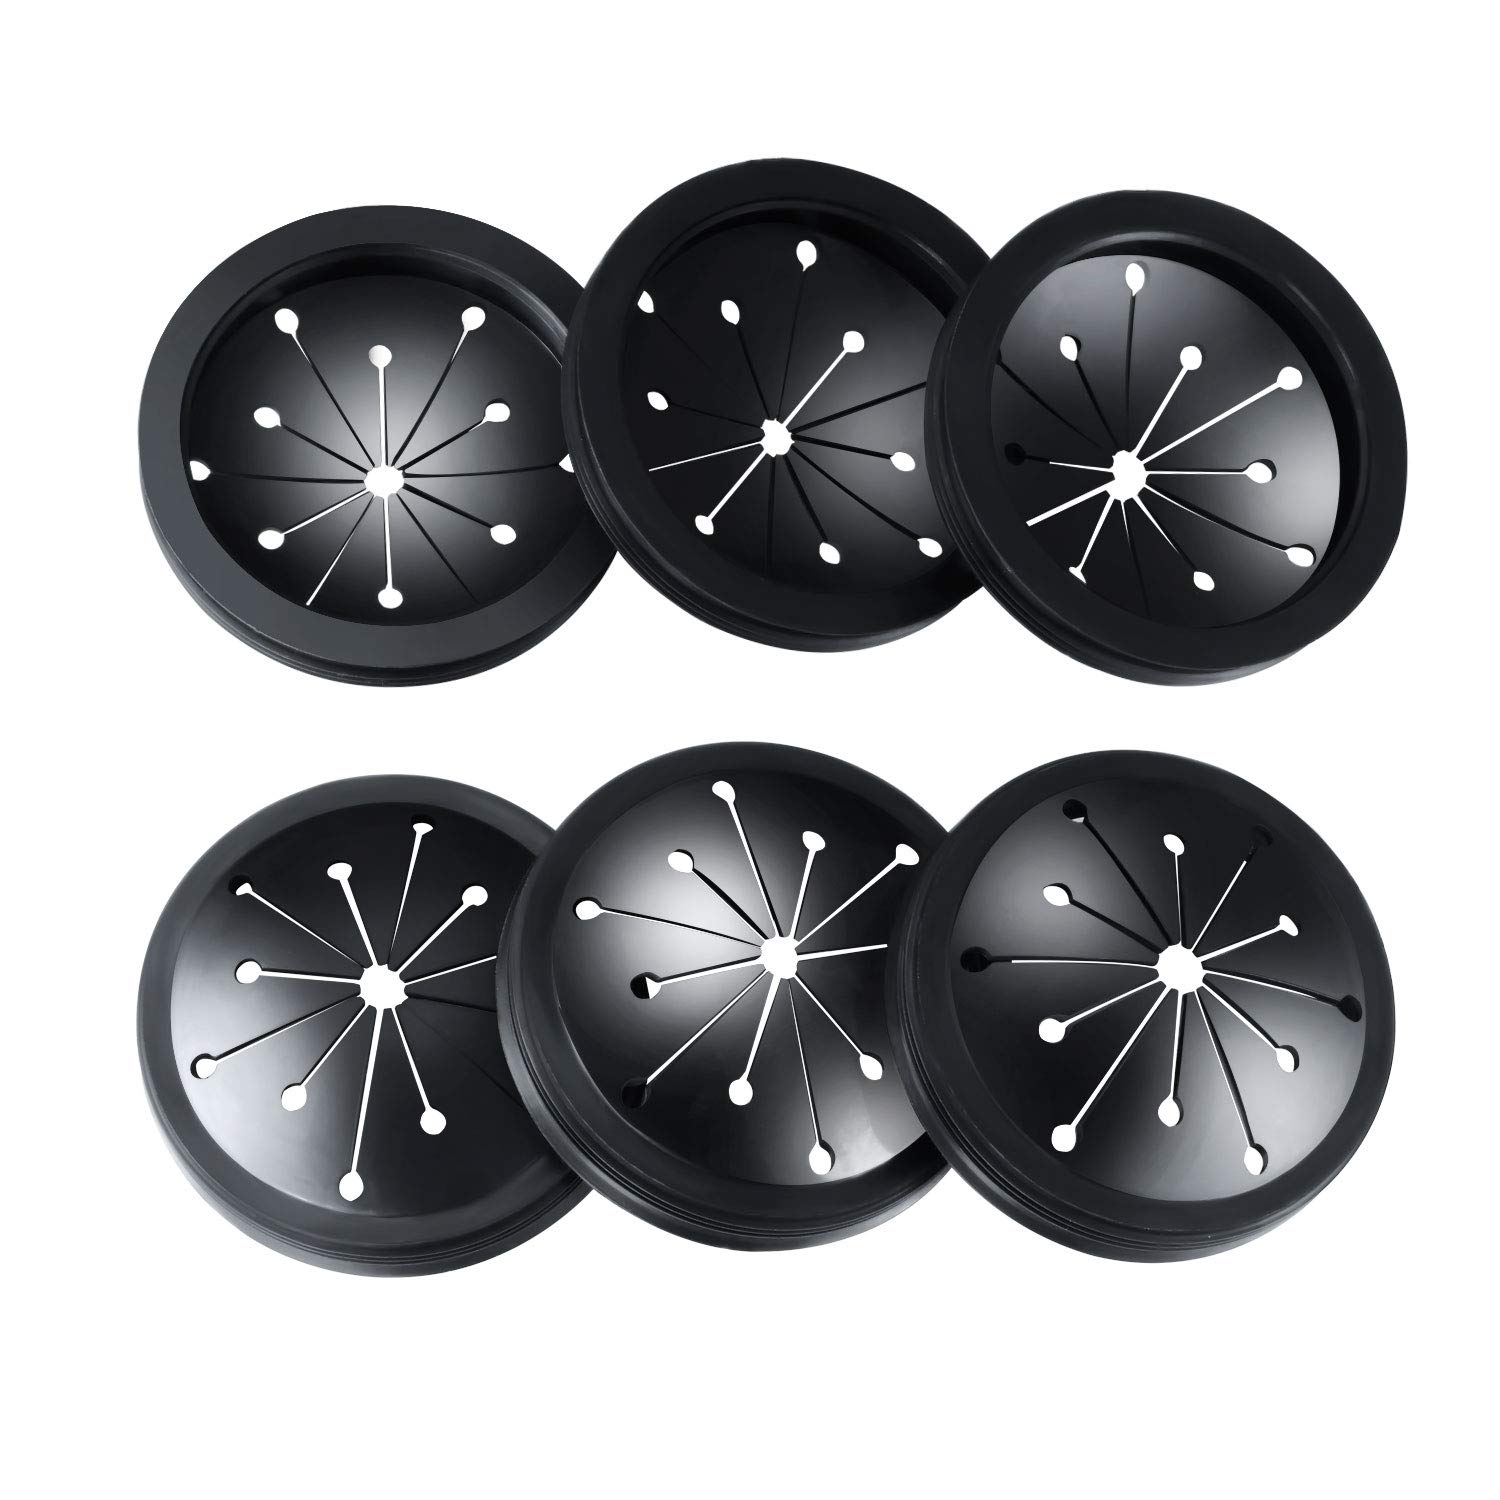 Canomo Disposal Splash Guard Sink Baffle Stopper Waste Food Disposal Part Fits for Whirlaway, Waste King, Sinkmaster and GE Models, 3-1/8 Inch, Black(6 Pack)